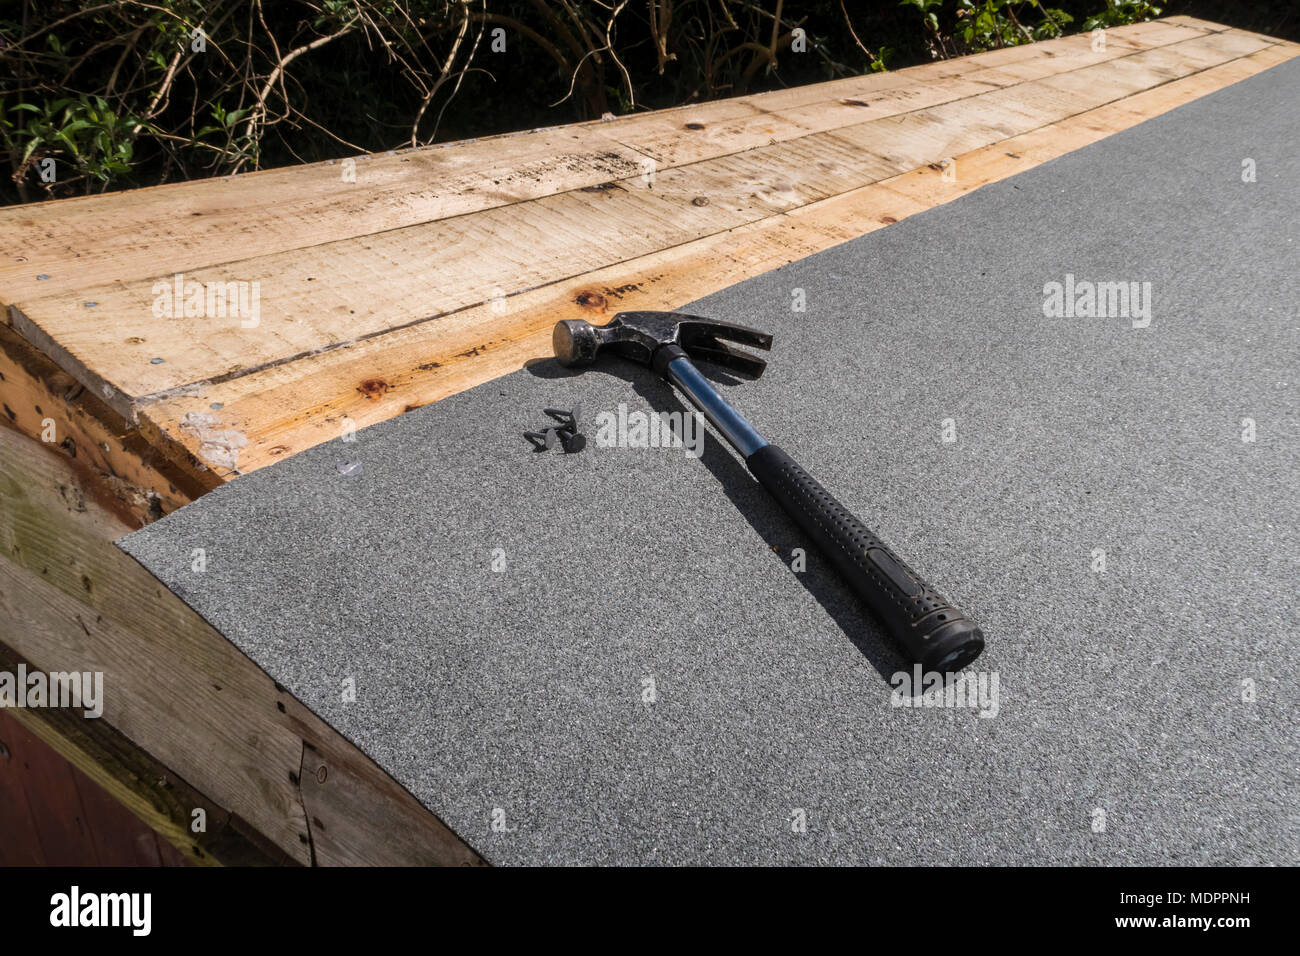 Repairing a leaking shed roof. Claw hammer and clout nails on to of new mineral coated roofing felt.